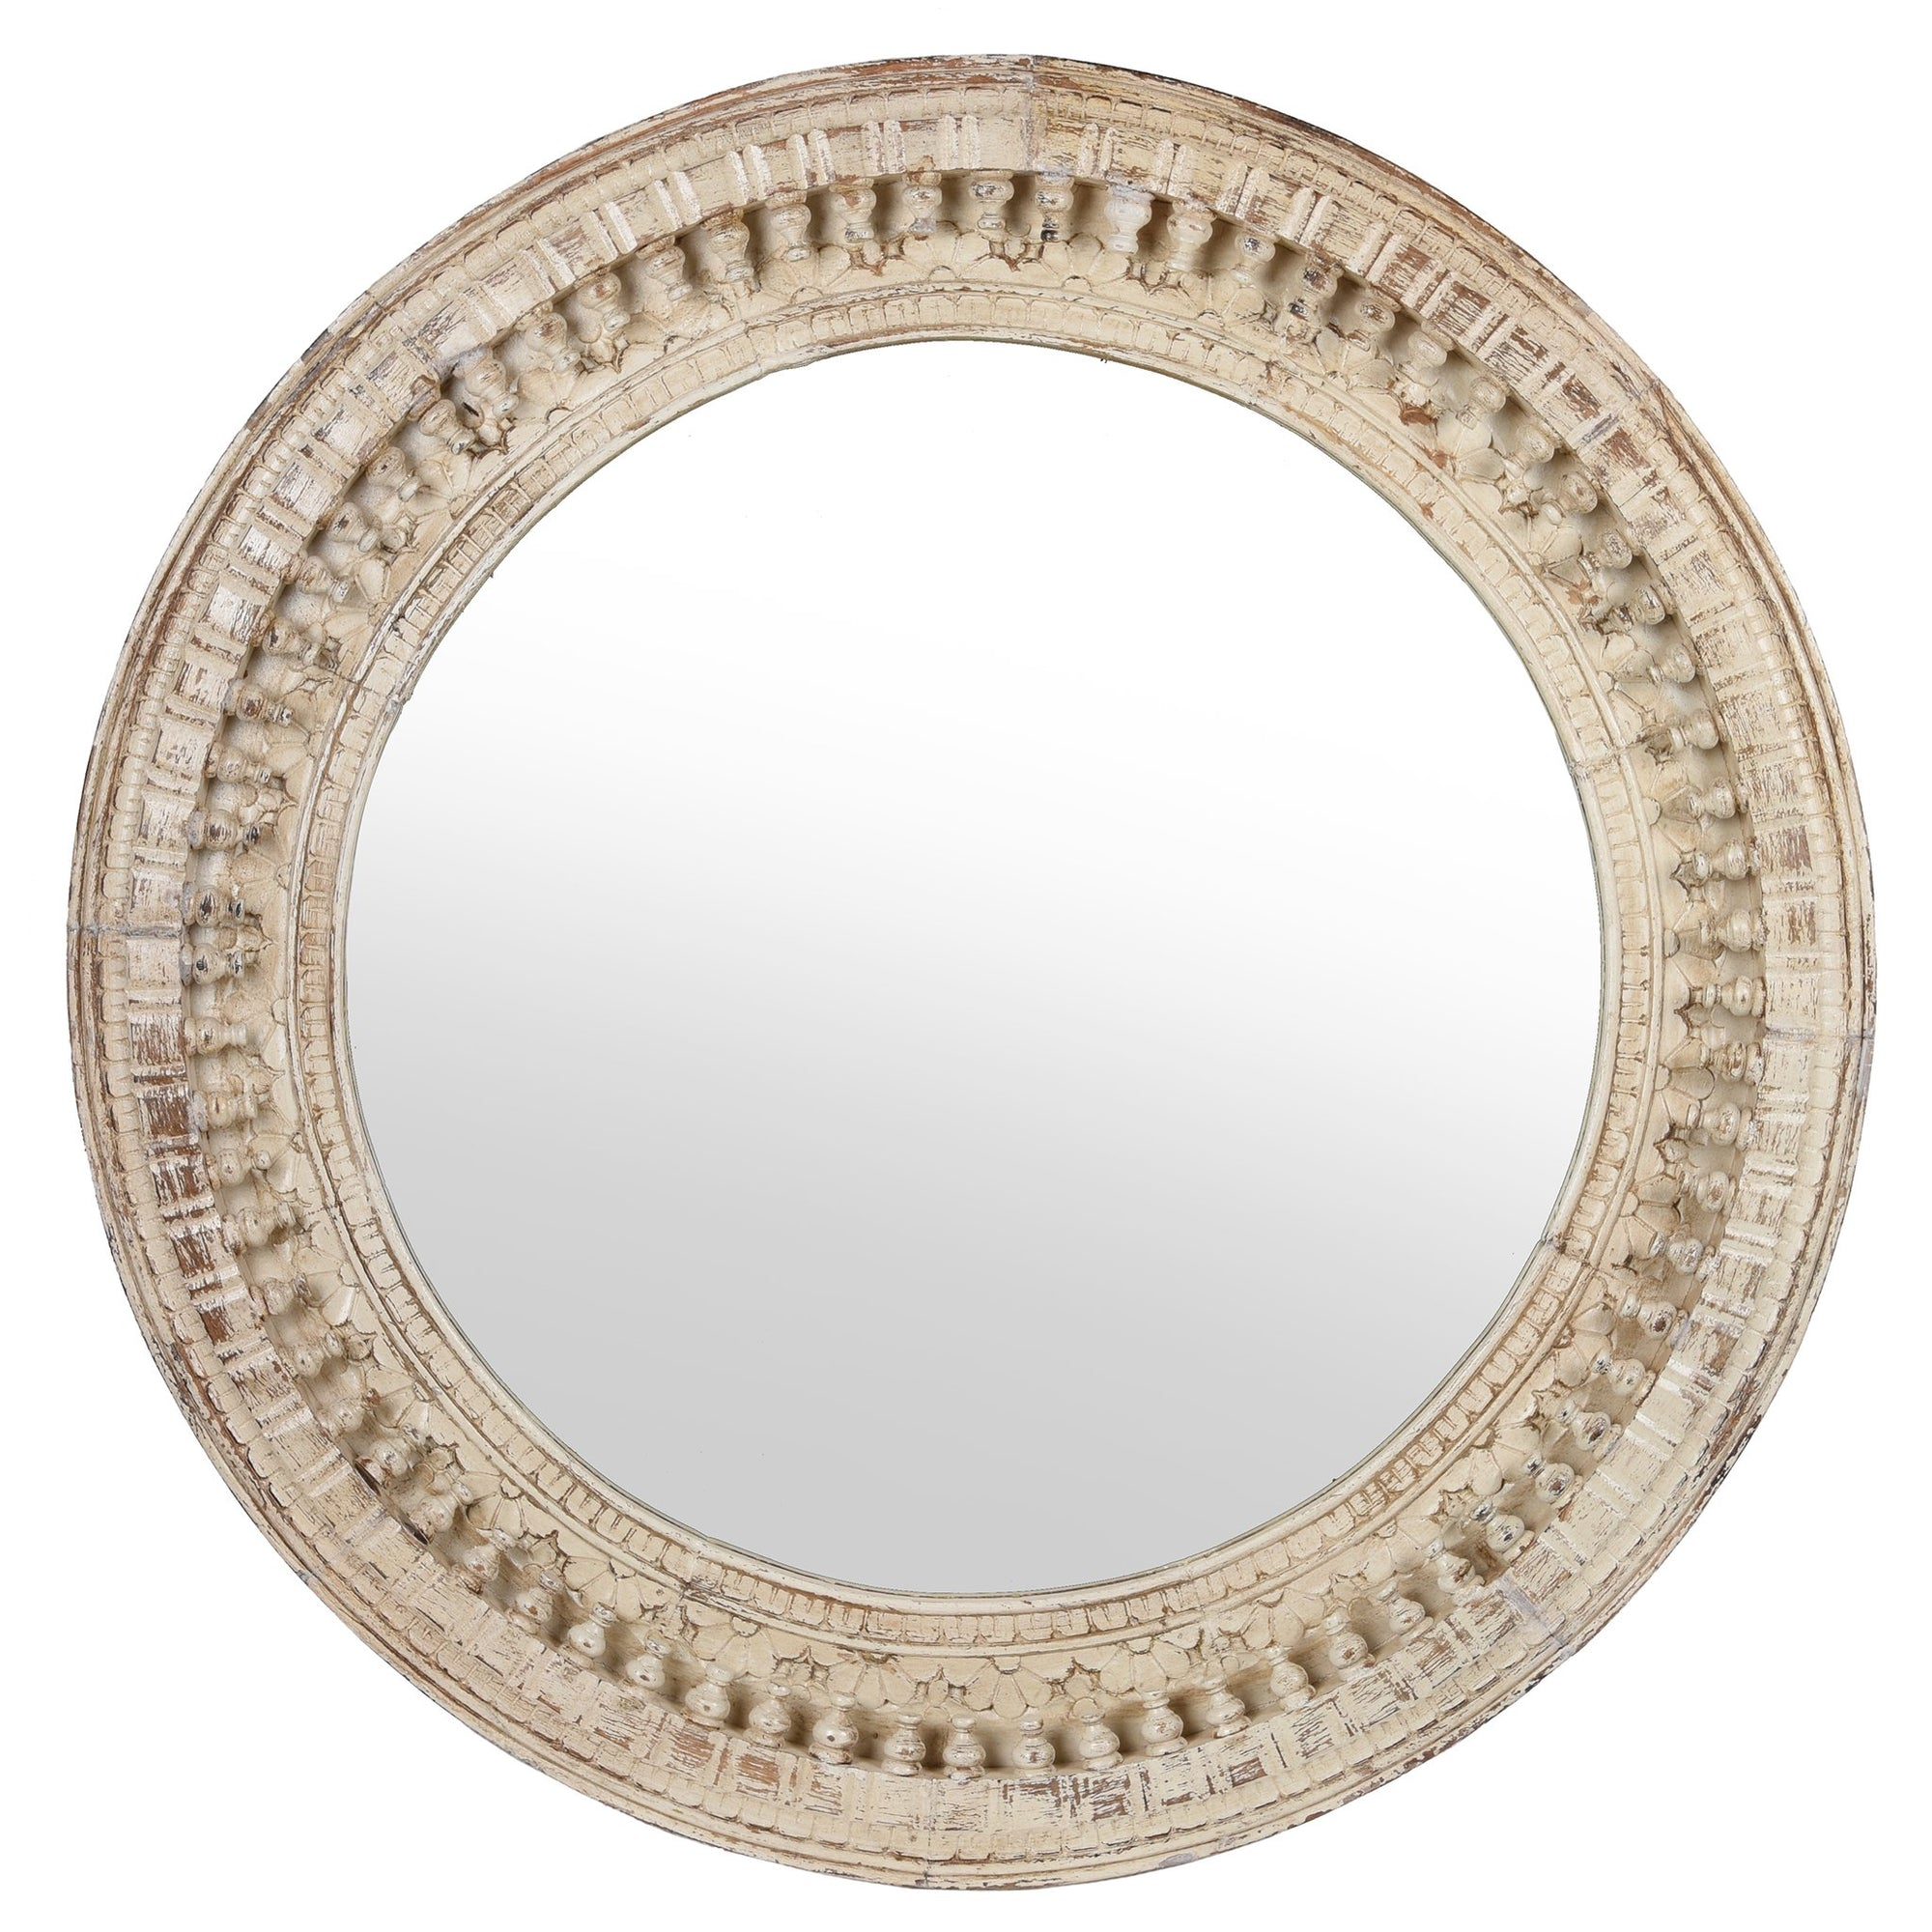 White Painted Carved Indian Mango Wood Round Mirror 90cms Diameter | Indigo Antiques